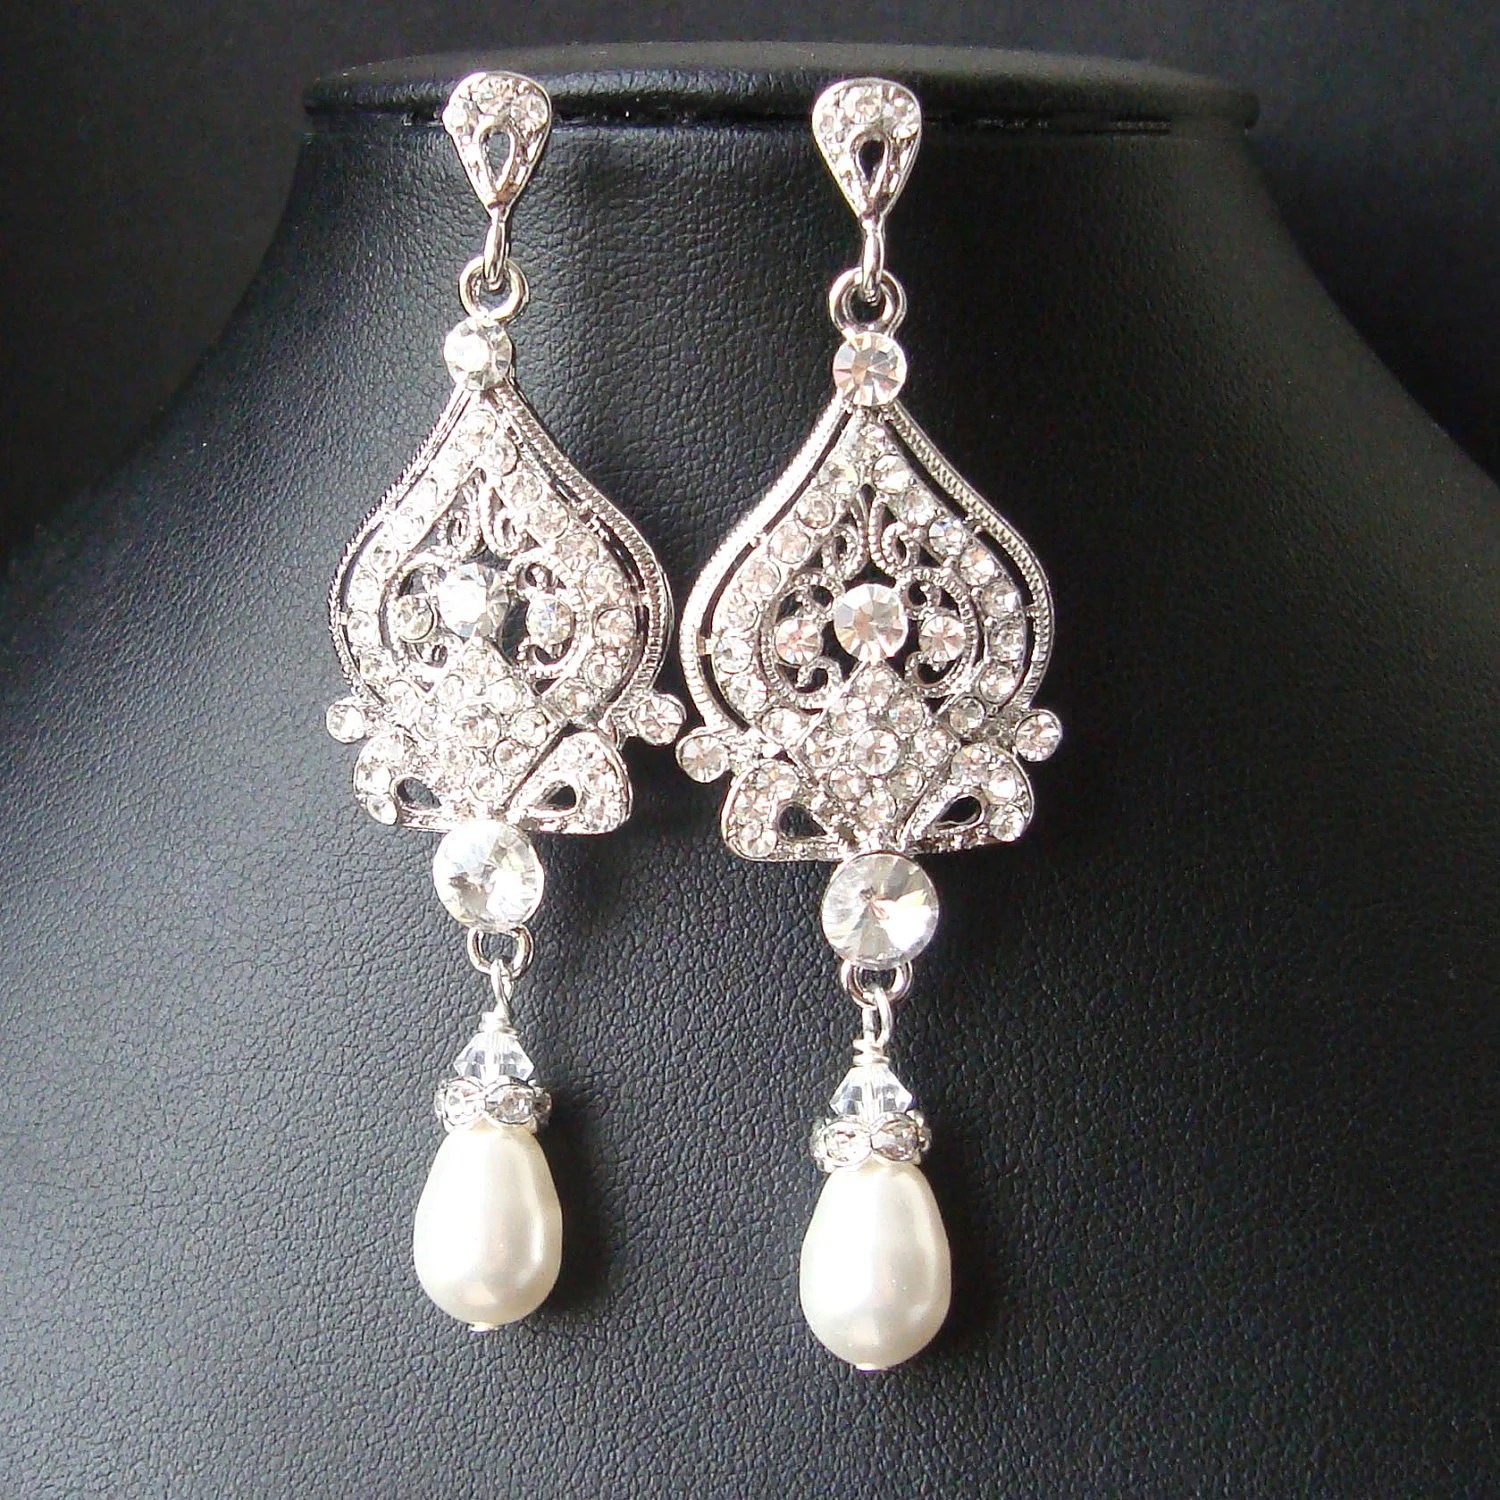 Art Deco Style Earrings Uk Art Deco Style Necklace Uk